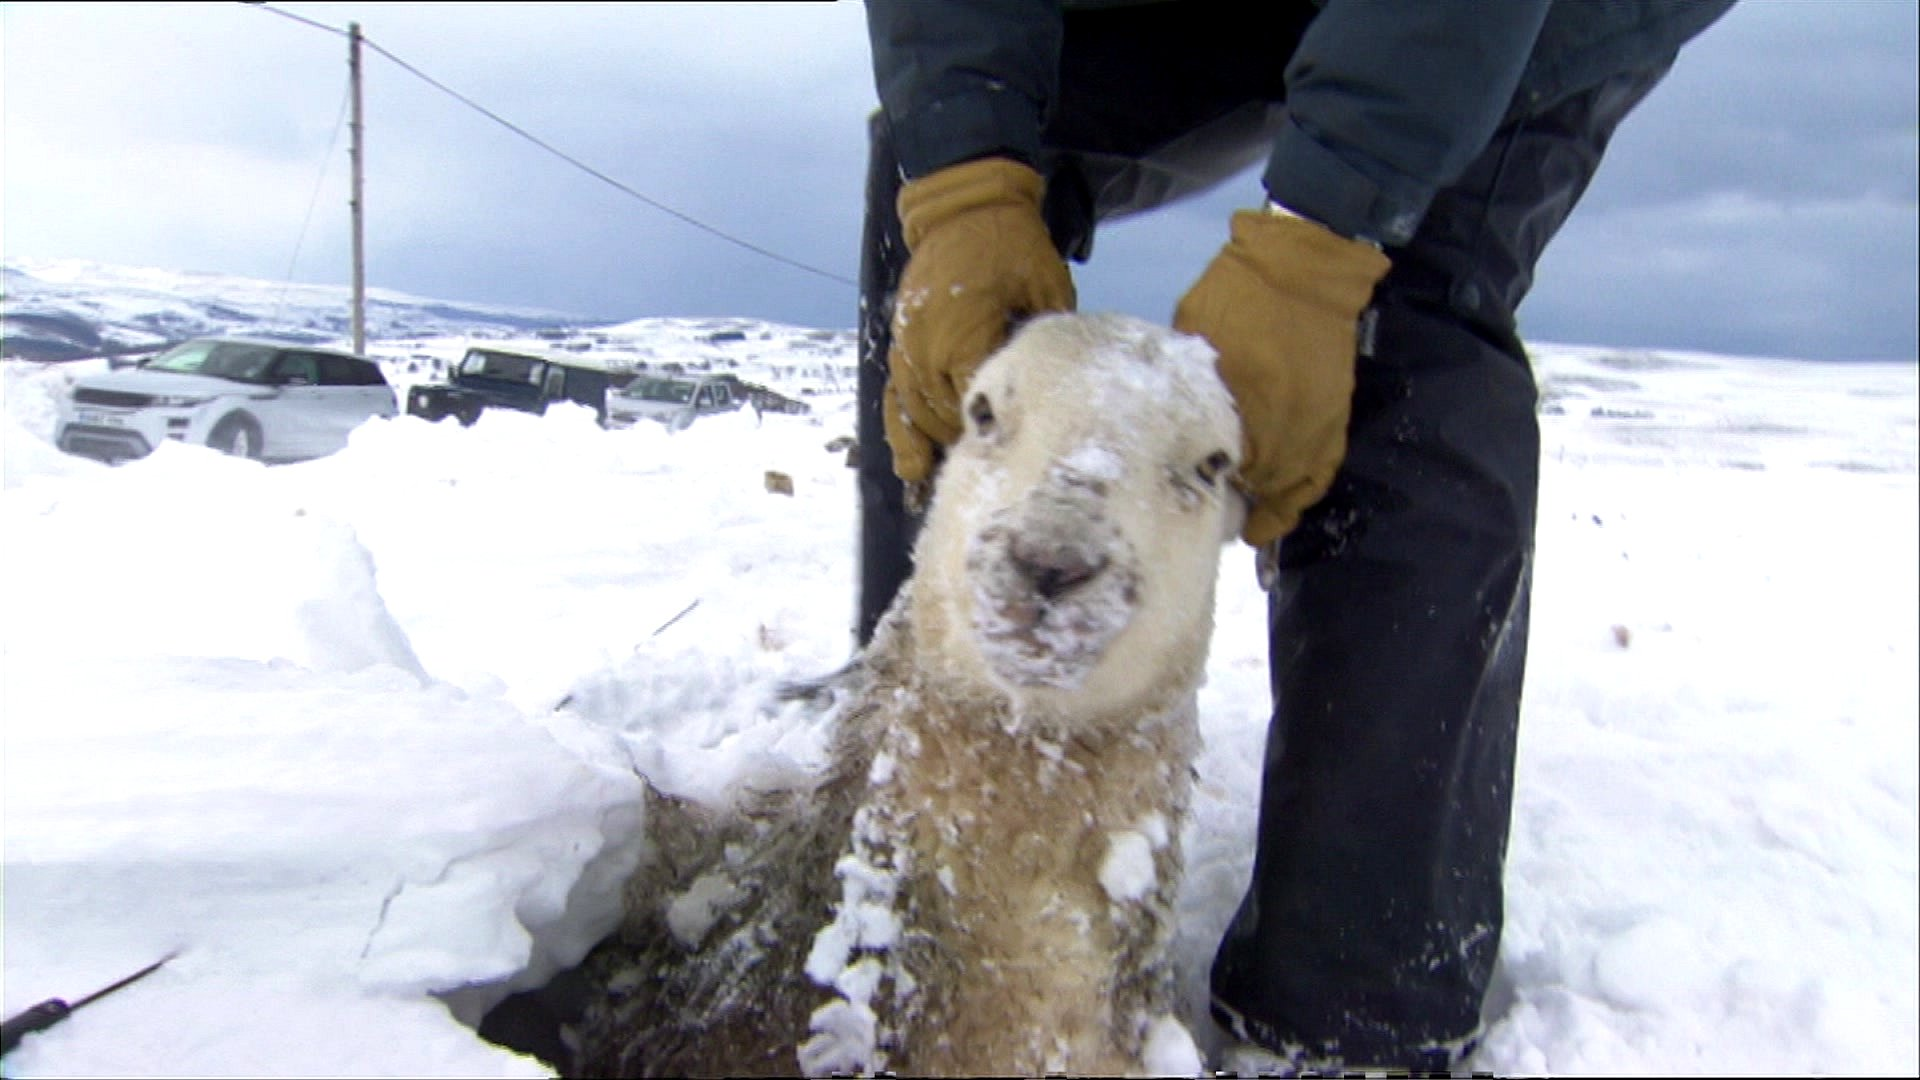 A sheep being pulled out of a snow drift